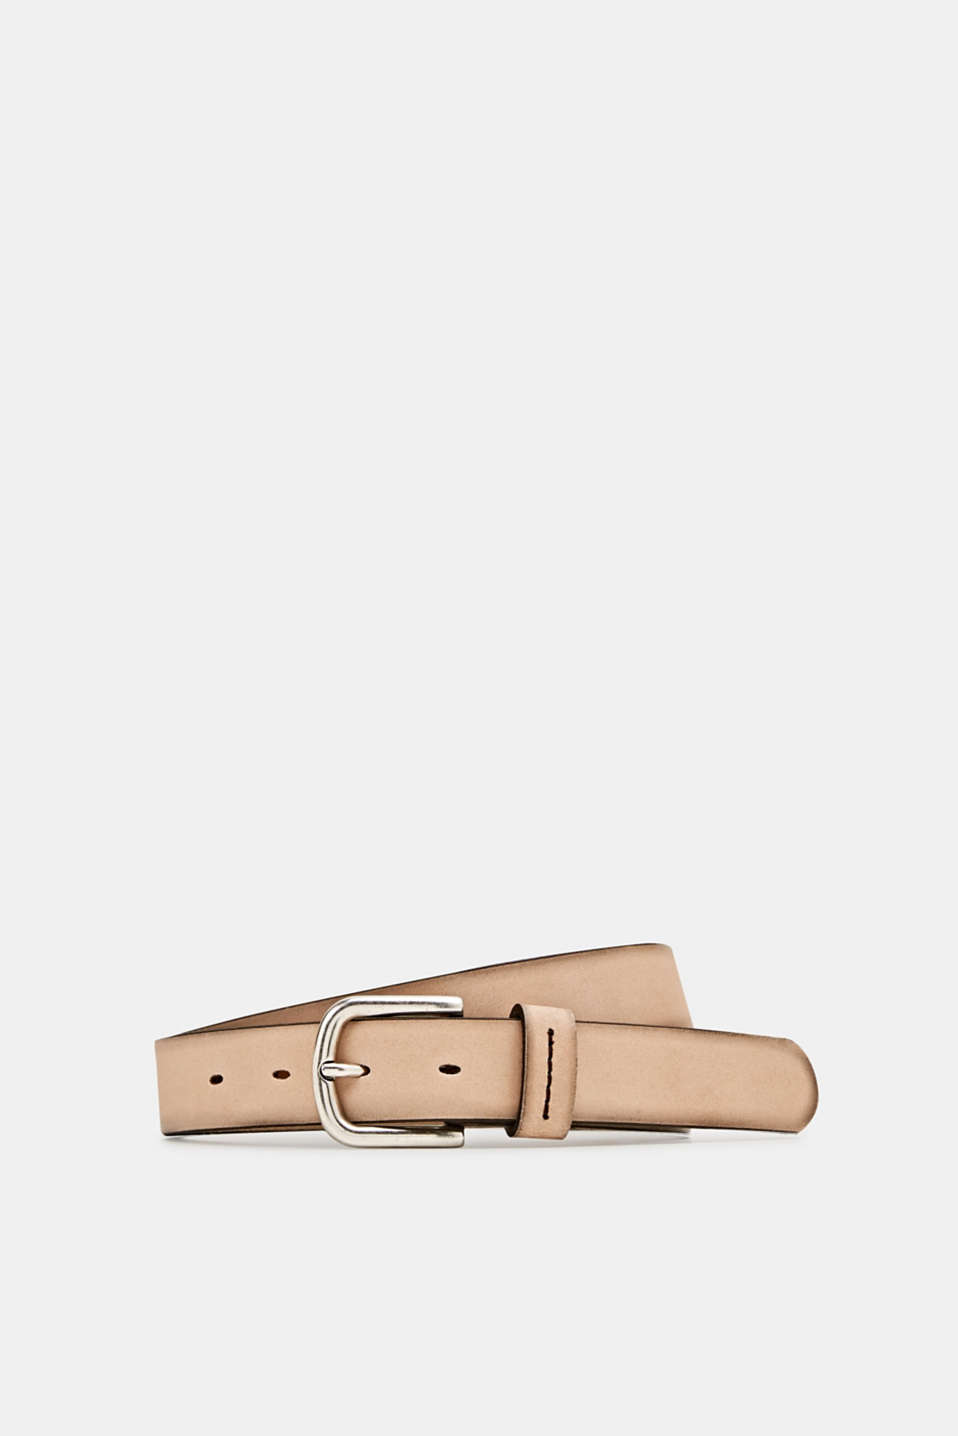 Esprit - Made of leather: belt with stitching